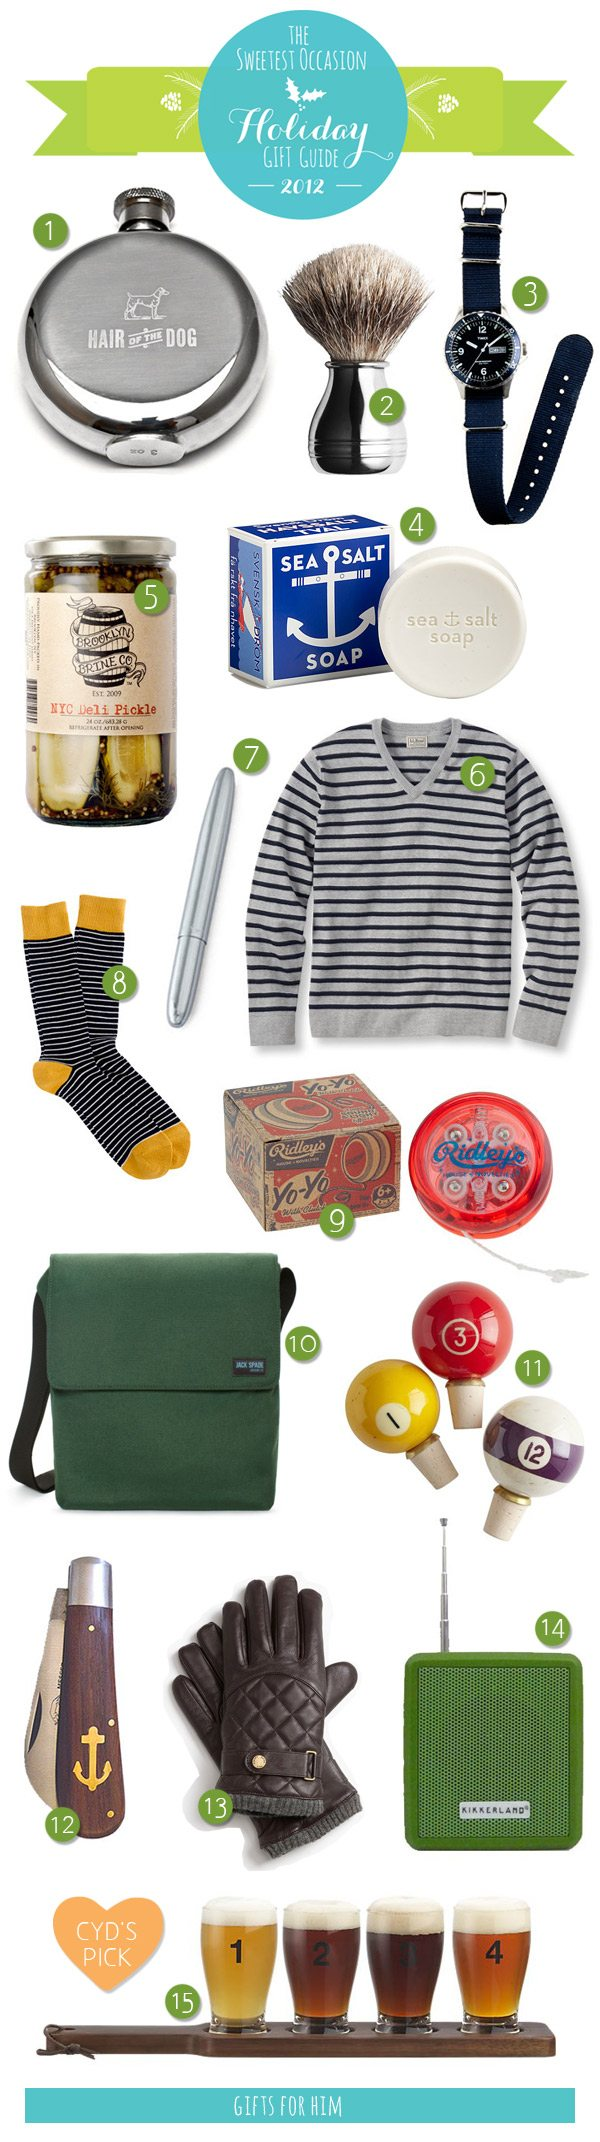 The Gift Guide: Gifts for Him | The Sweetest Occasion